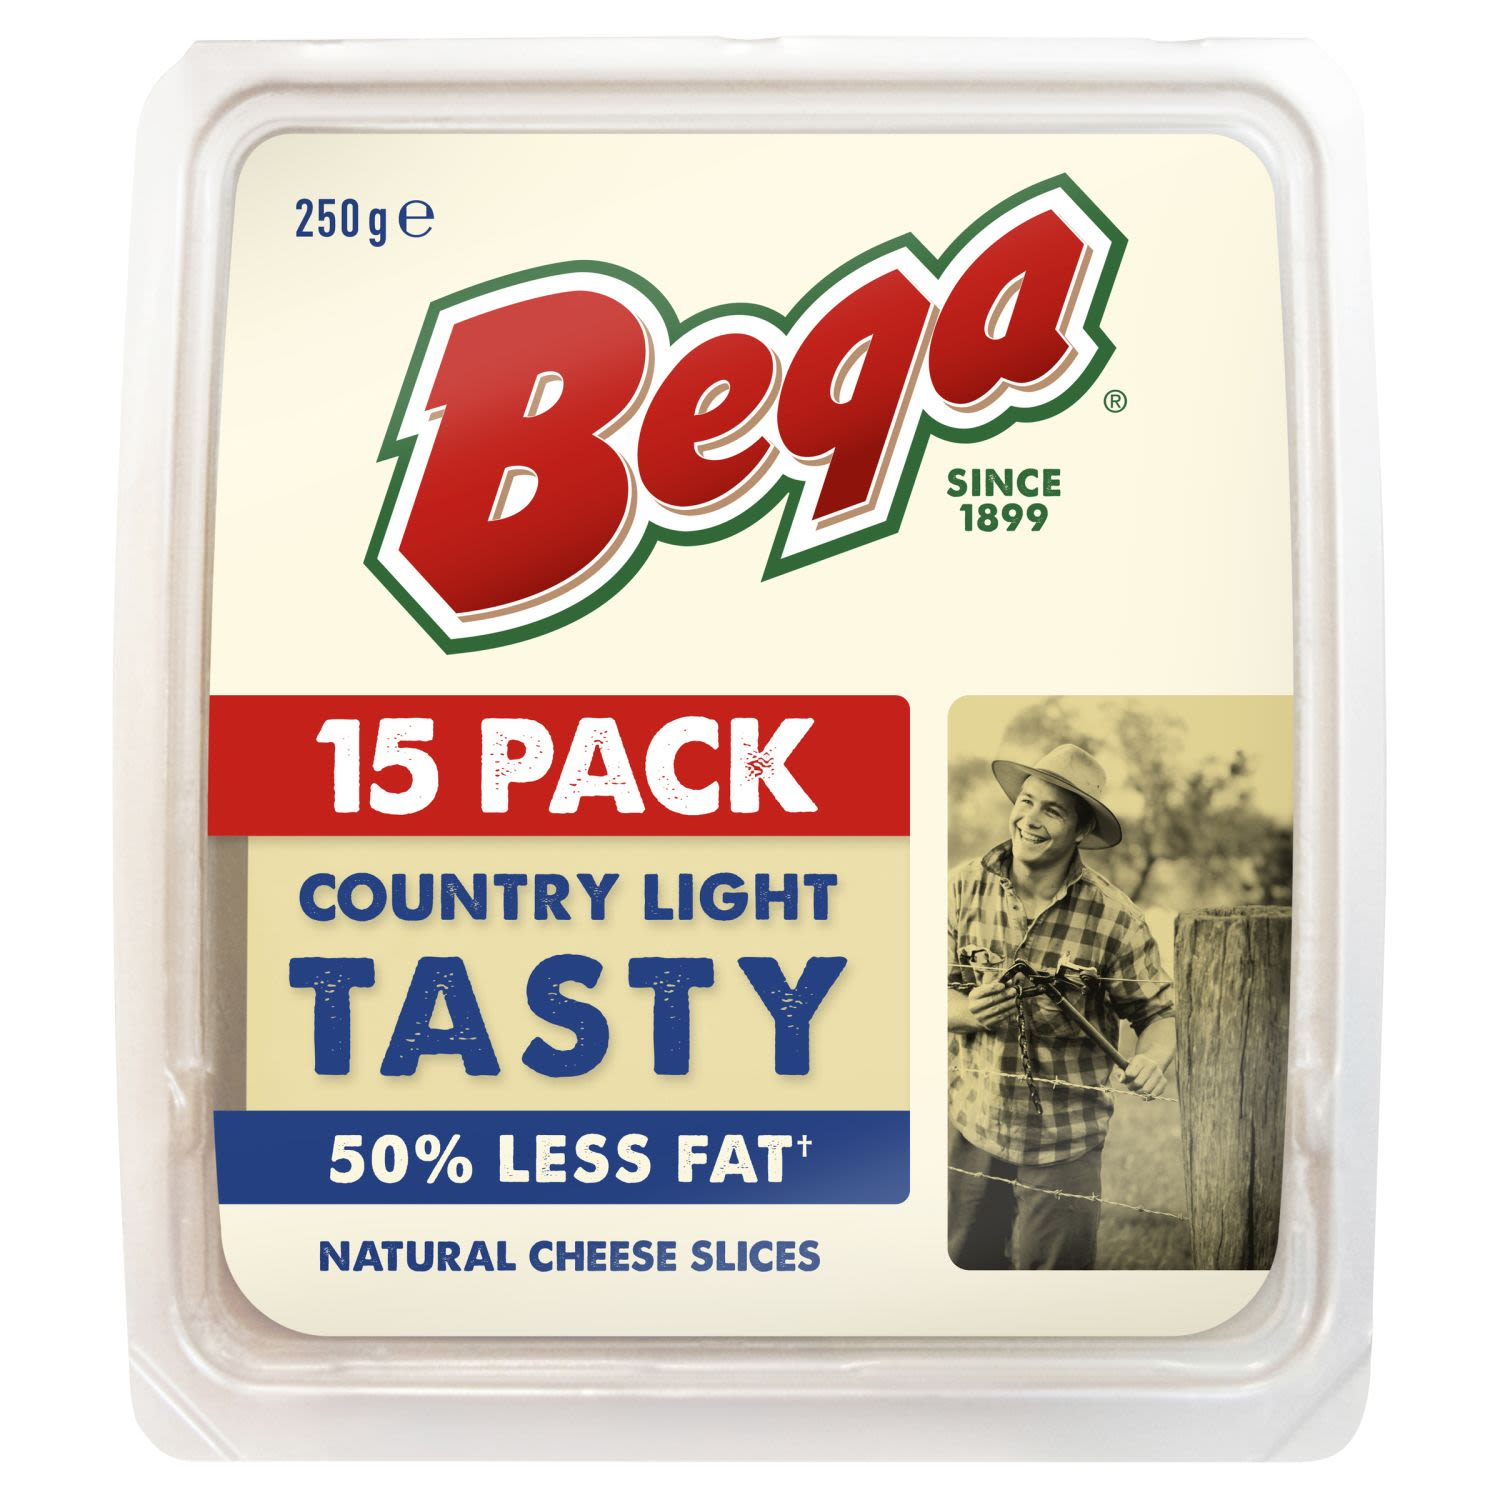 Bega Country Light Tasty 50% Less Fat Natural Cheese Slices , 15 Each